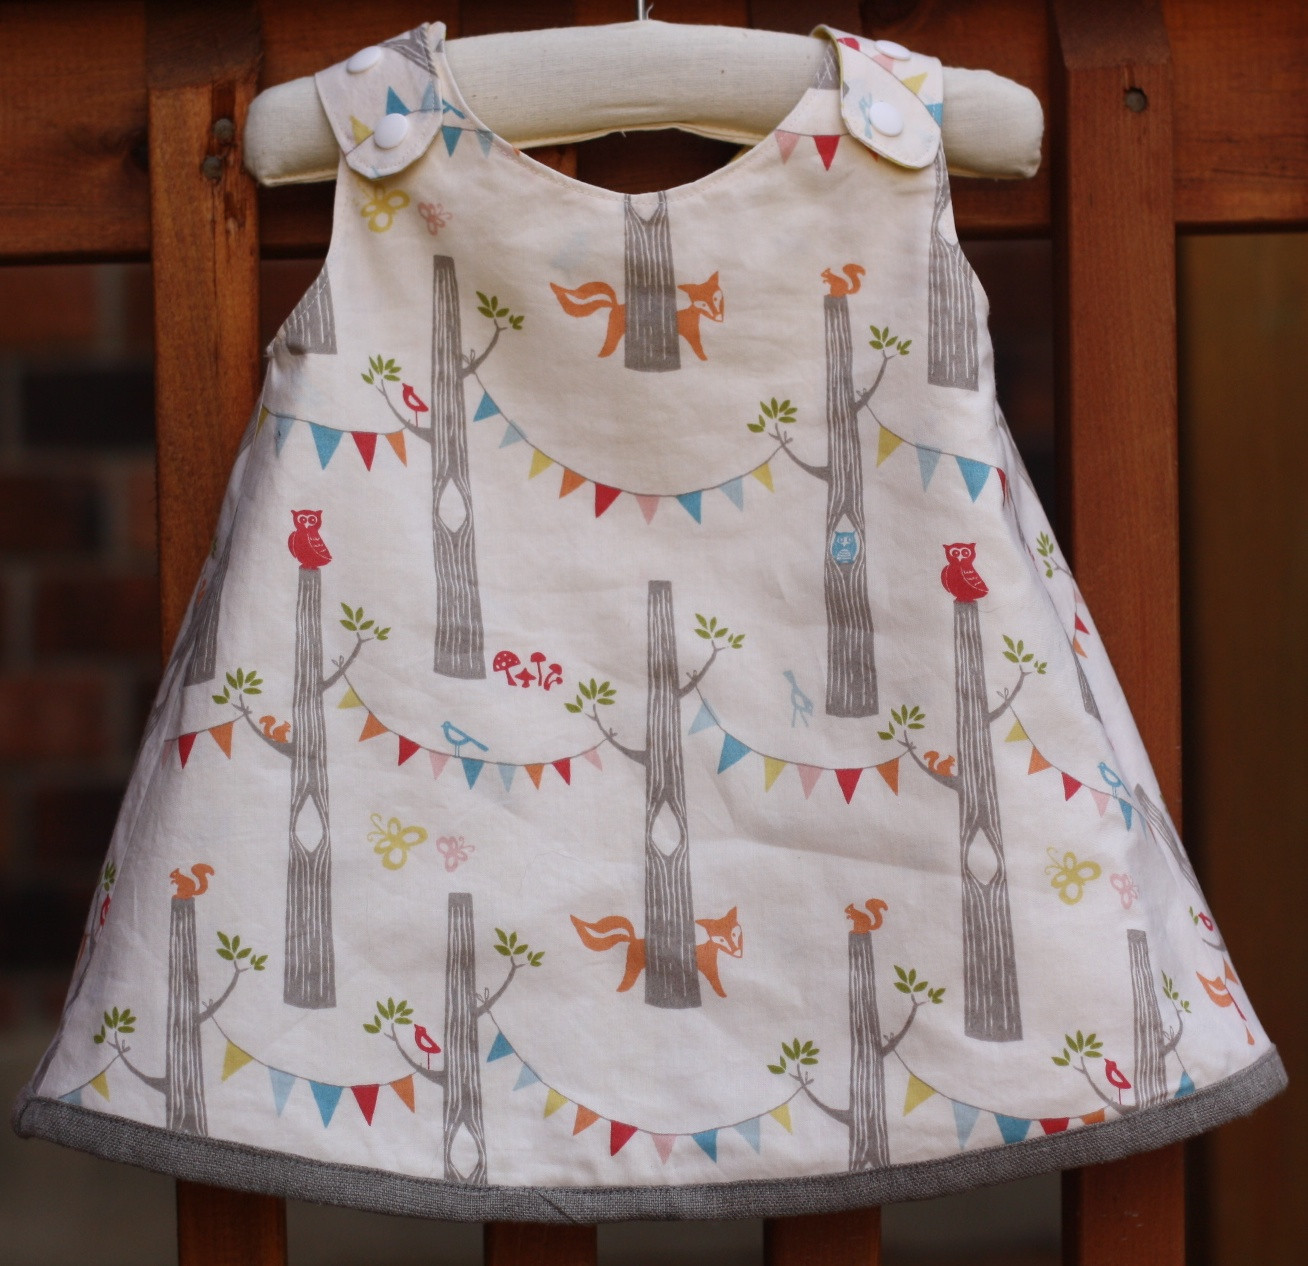 Stitched To her Serena Baby Dress